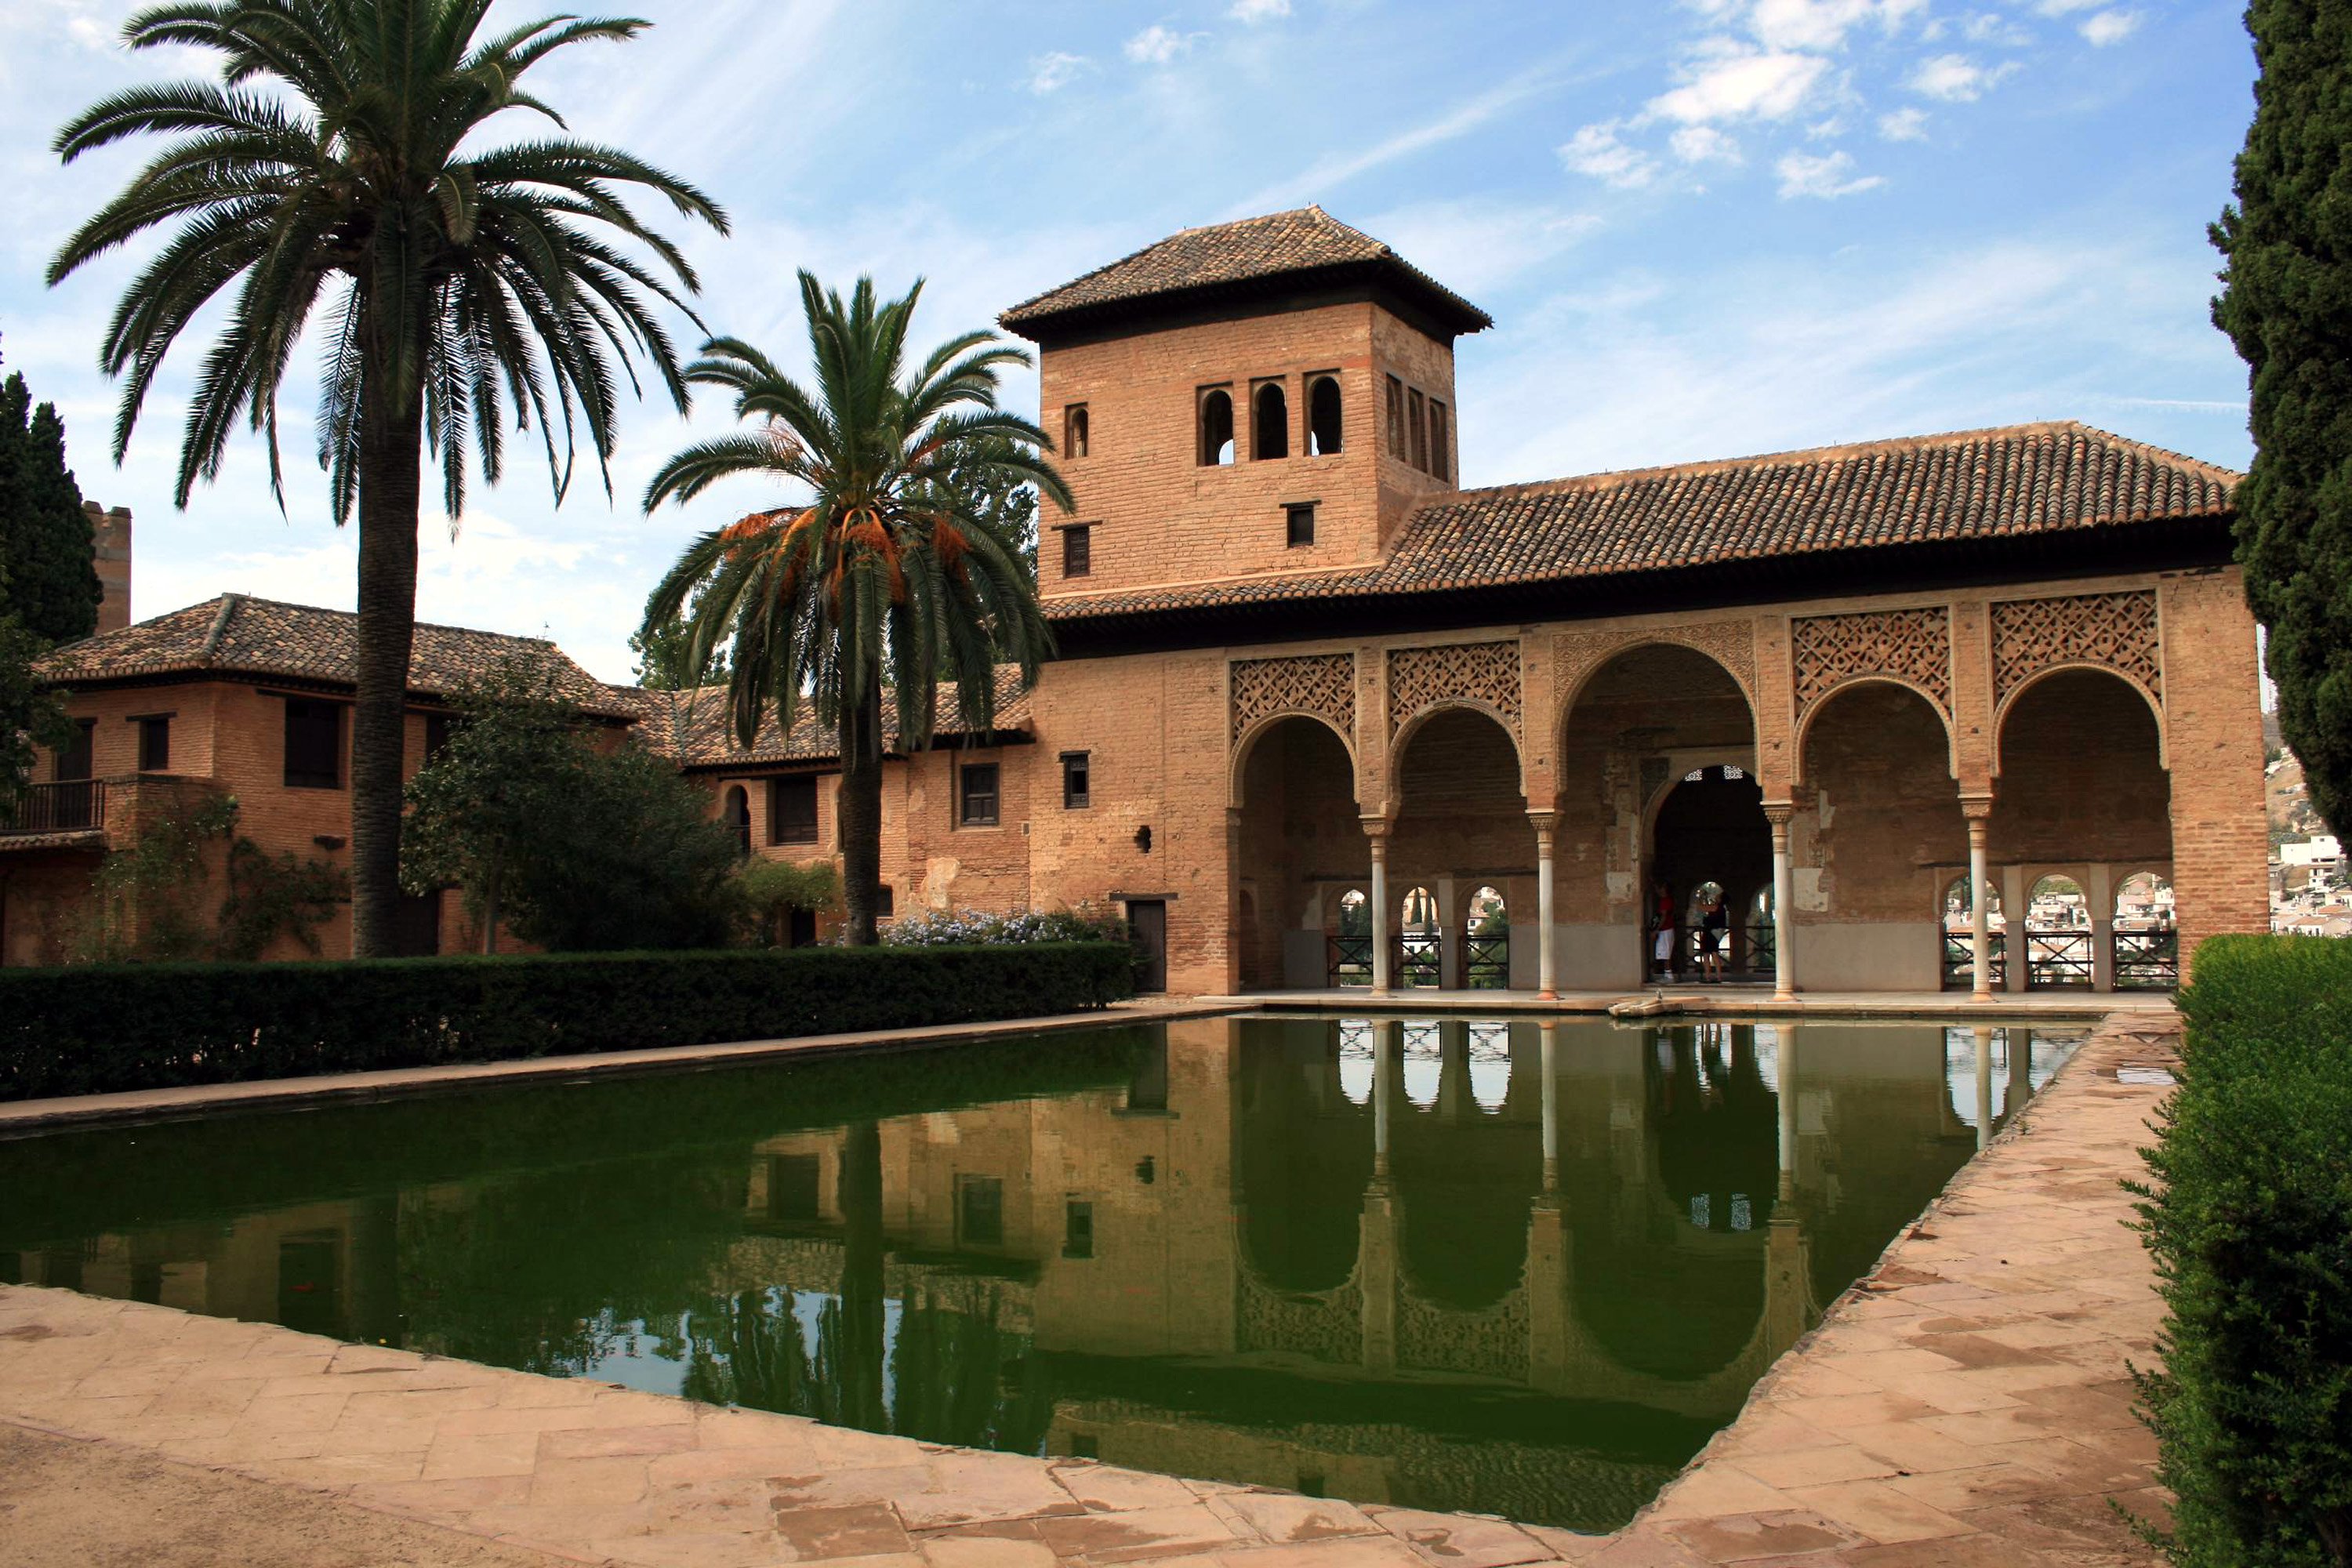 https://i2.wp.com/upload.wikimedia.org/wikipedia/commons/e/e1/Alhambra_-_Granada_1.jpg